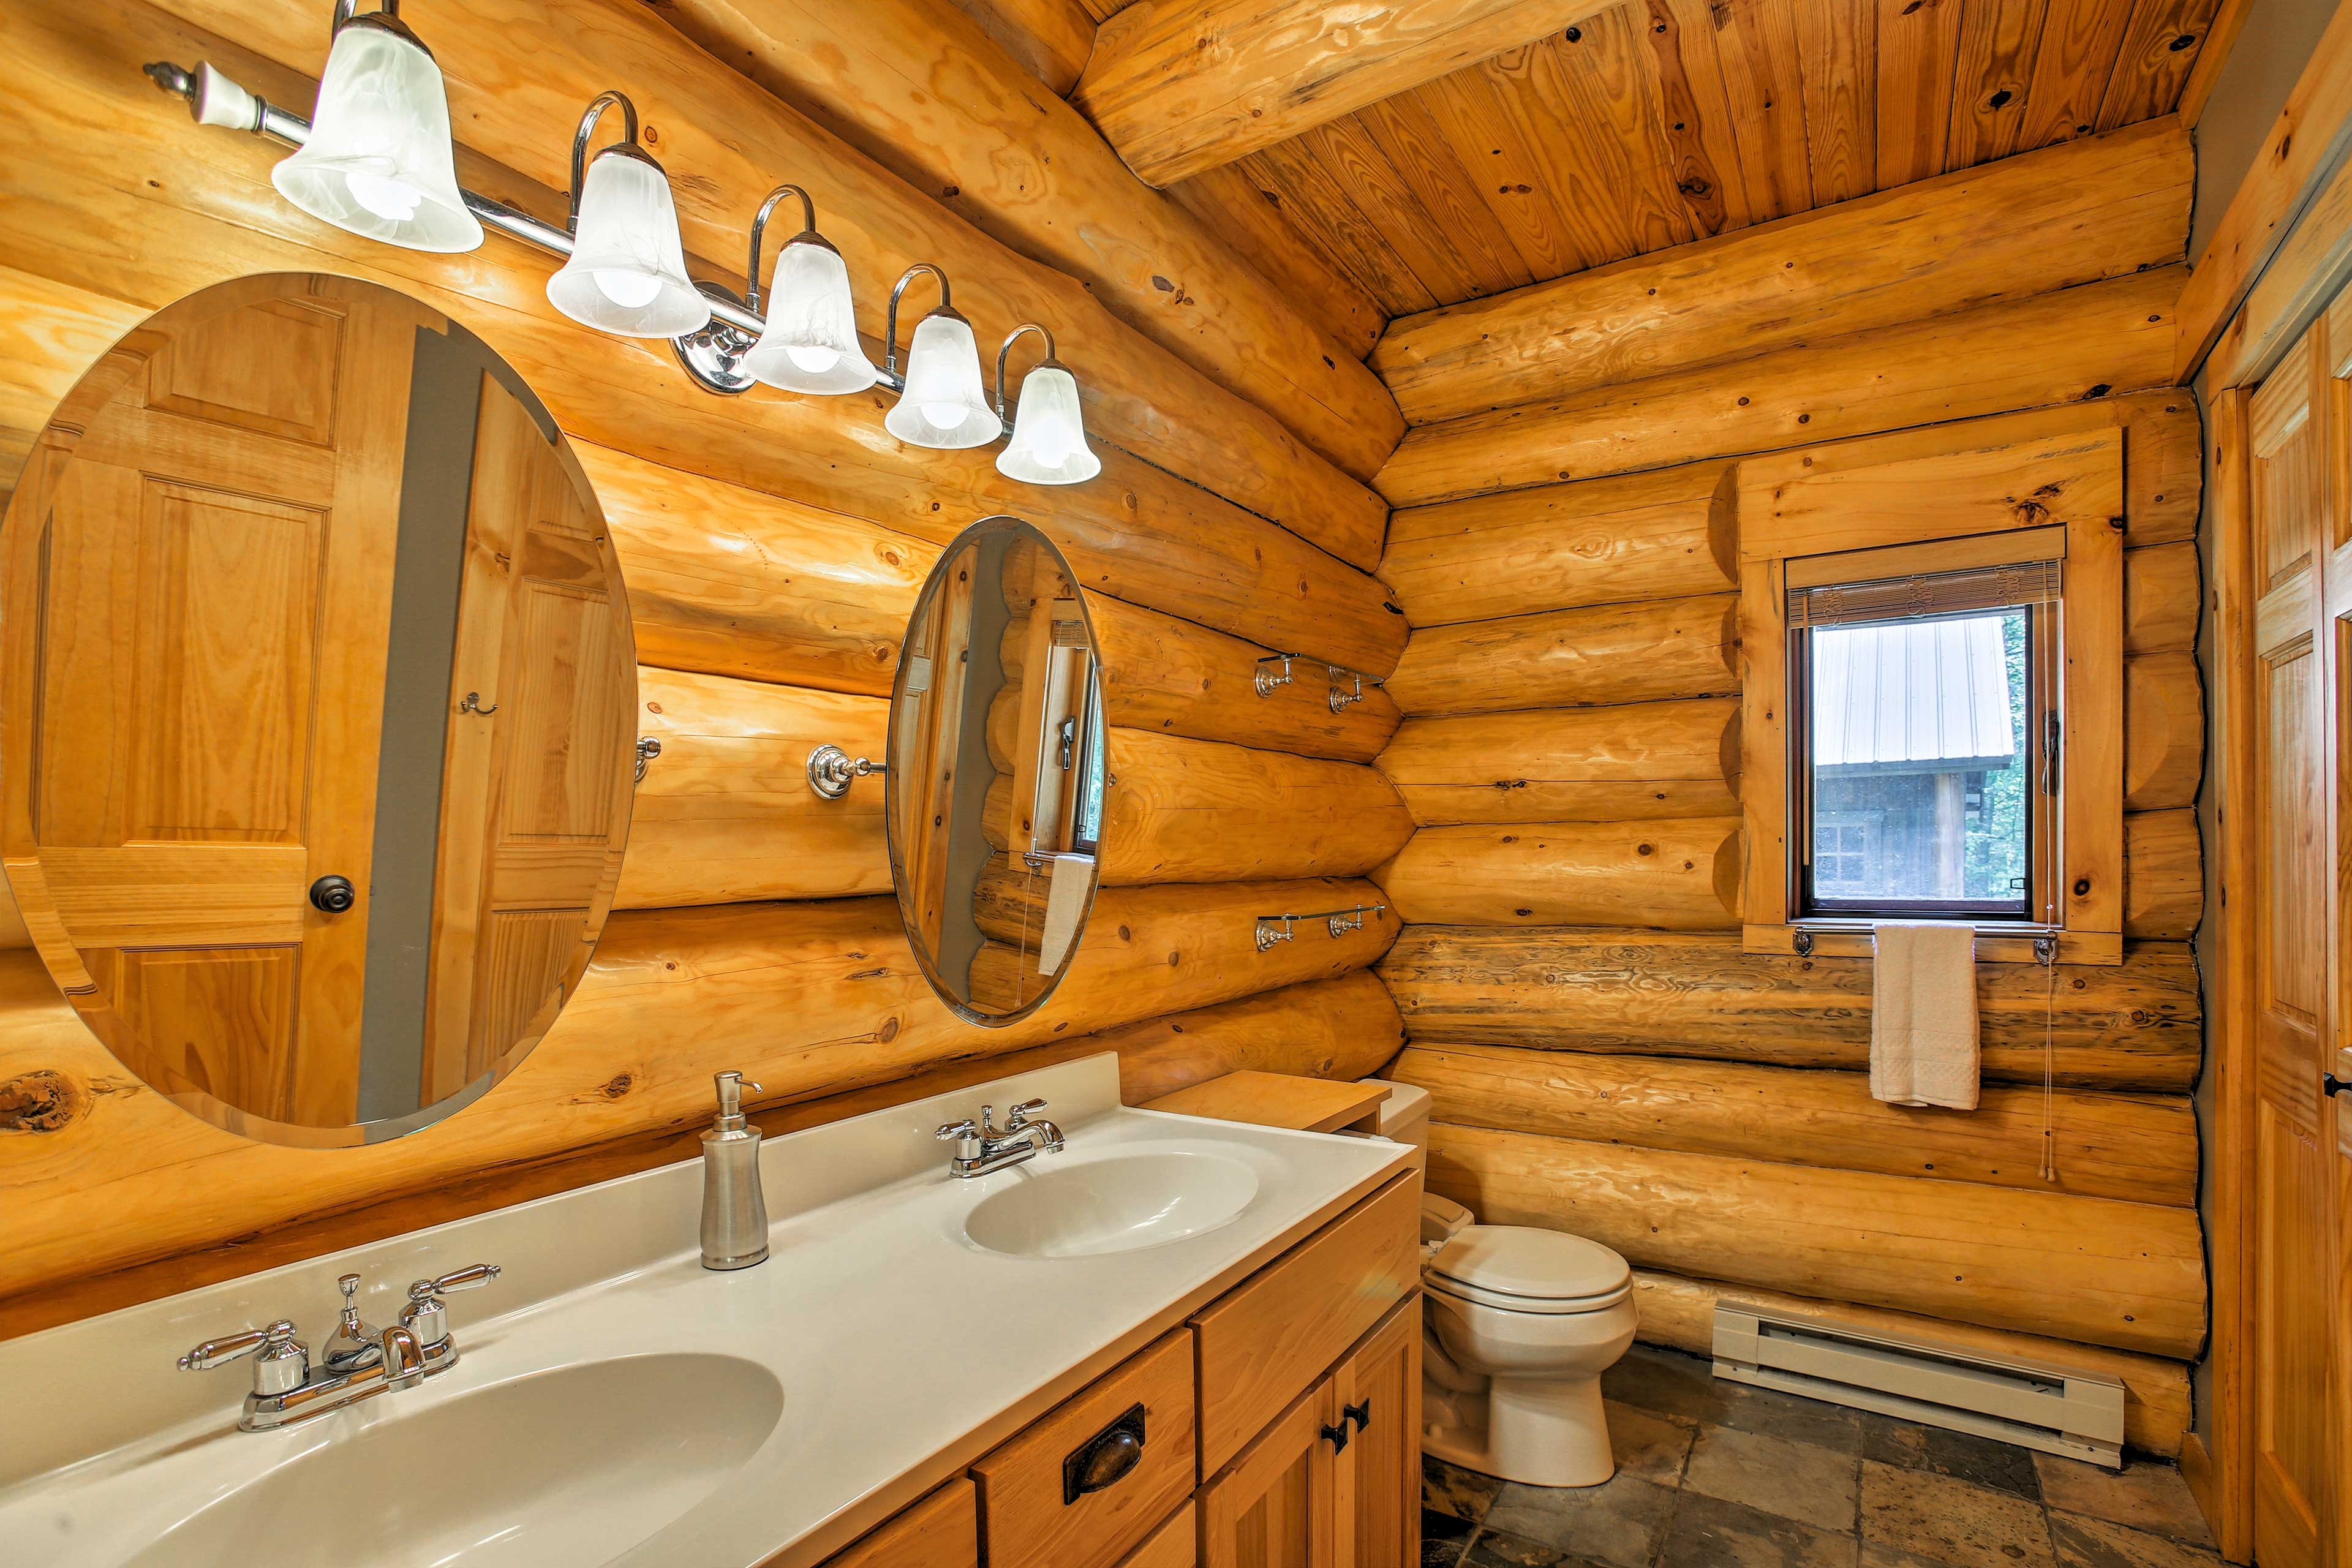 The spacious bathroom offers a shower to rinse off.